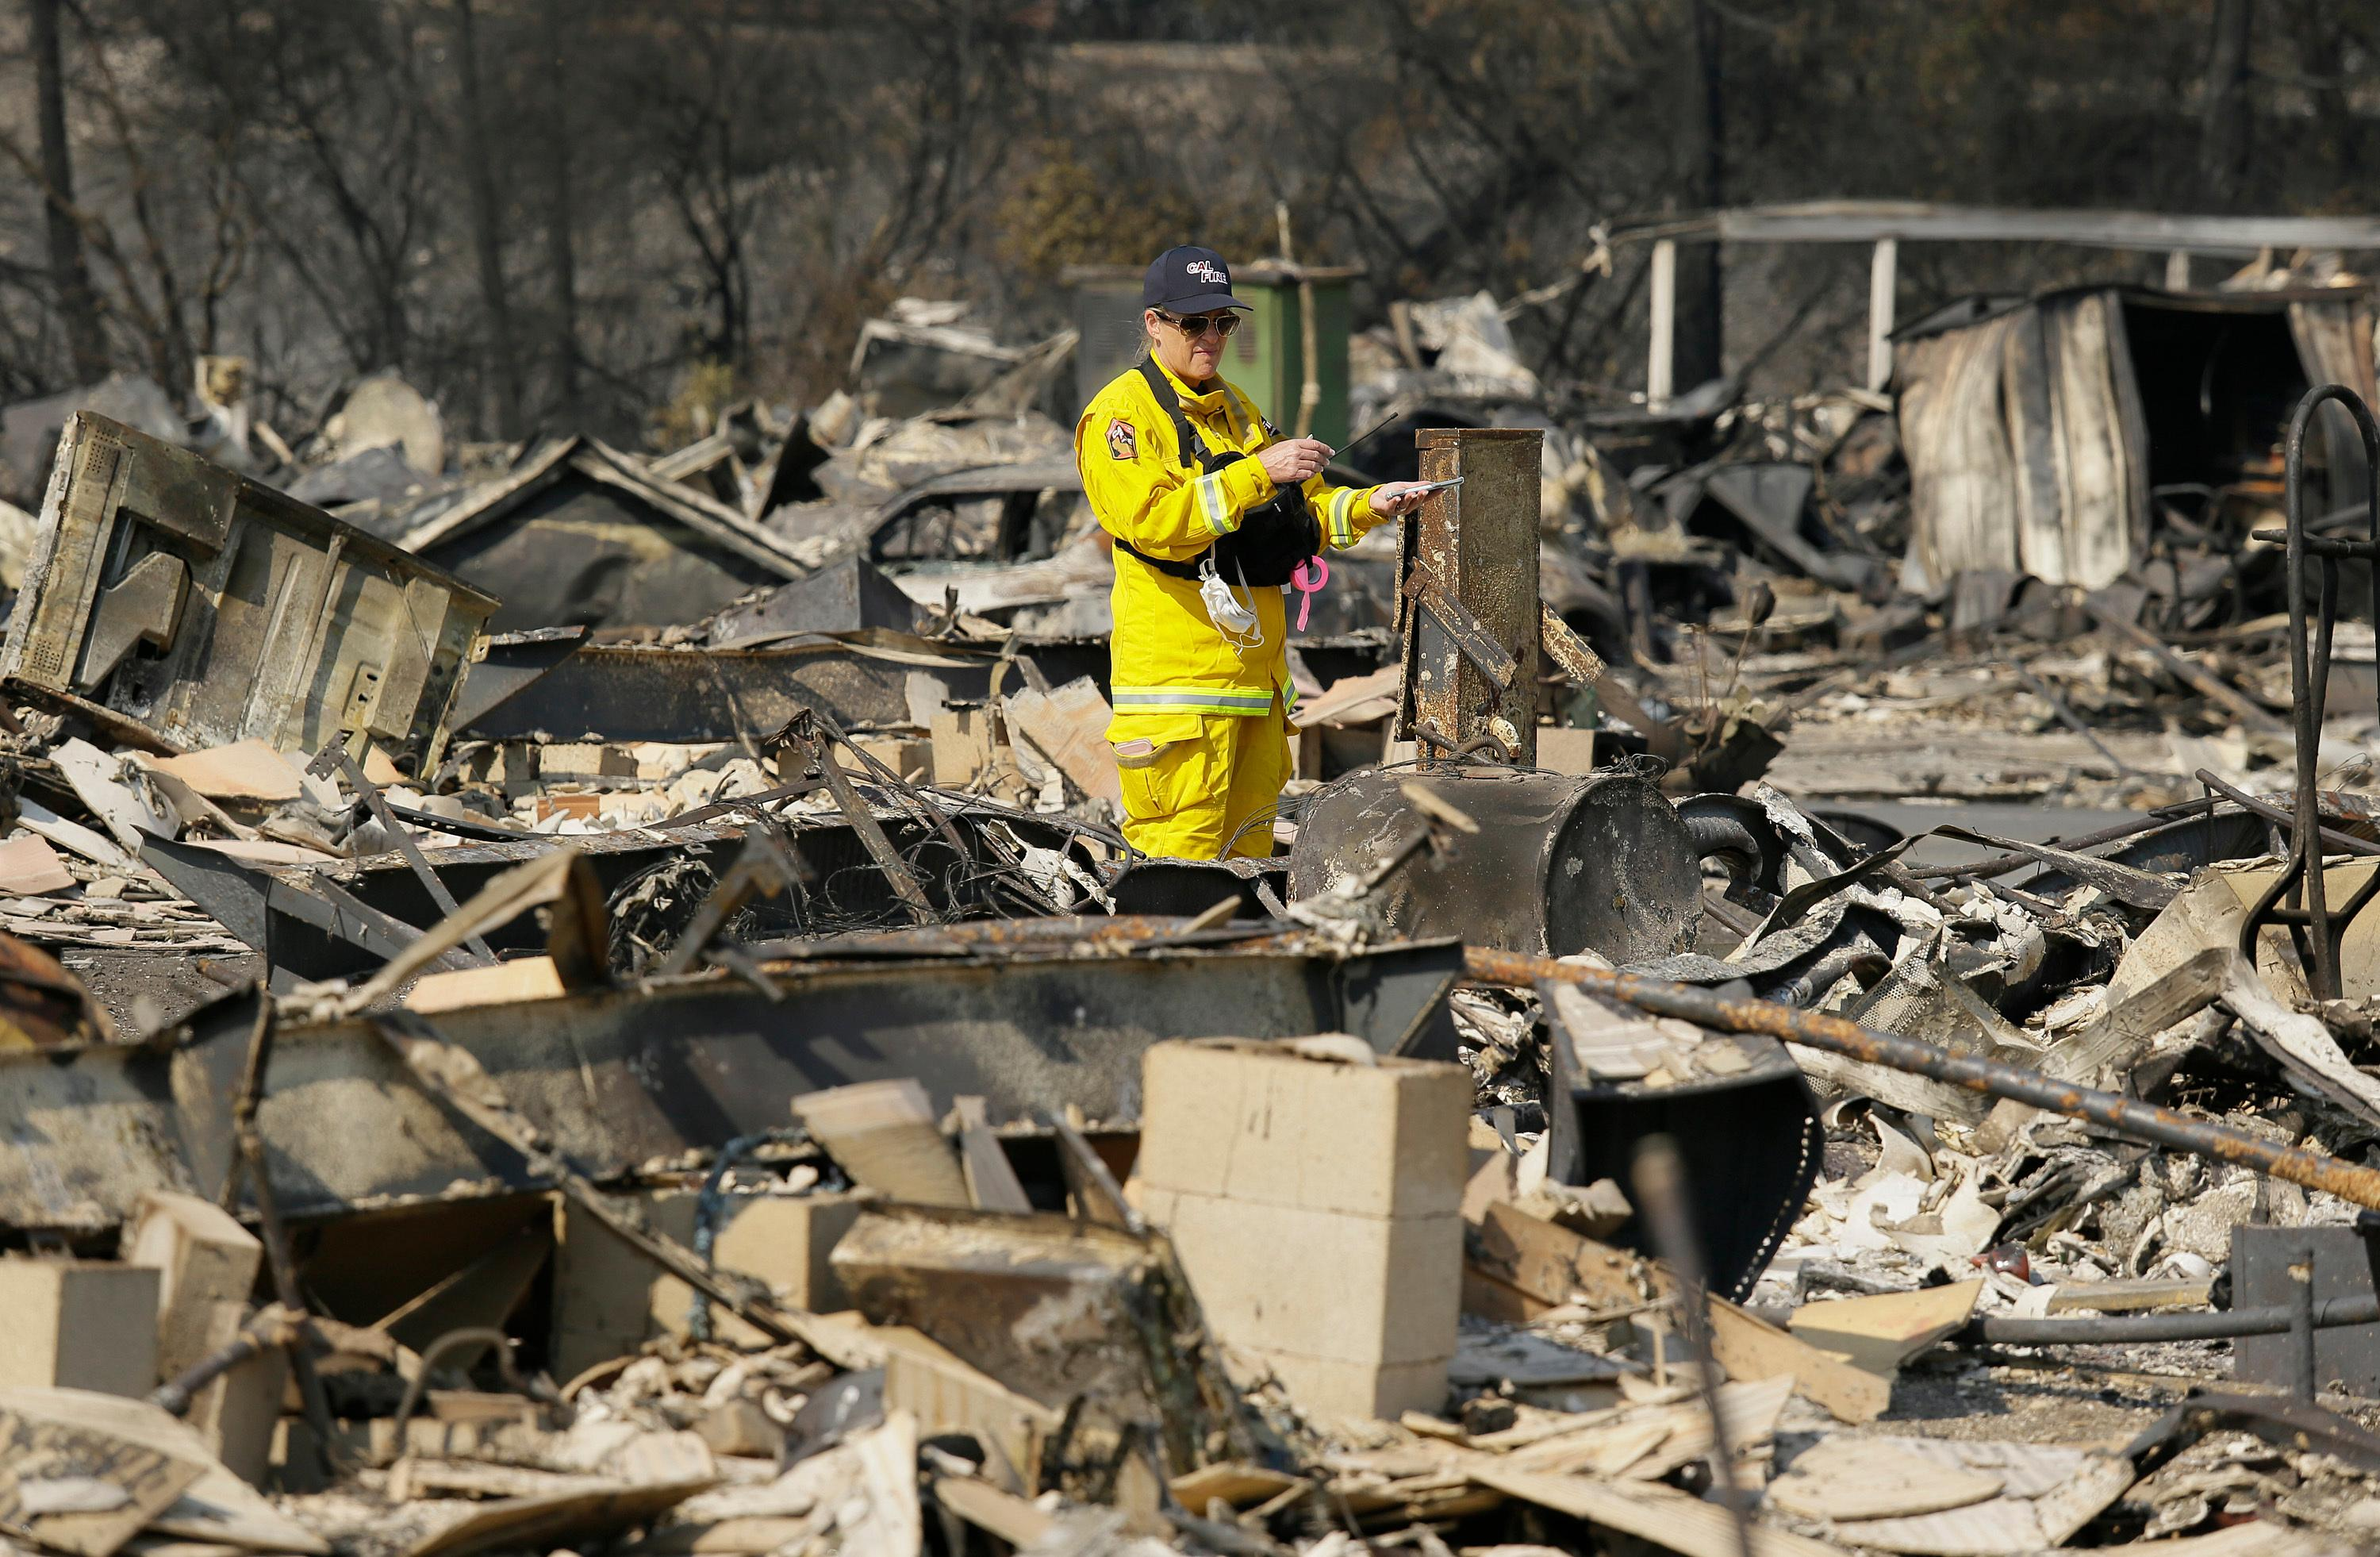 A Cal Fire official looks out at the remains of the Journey's End mobile home park Wednesday, Oct. 11, 2017, in Santa Rosa, Calif.    Blazes burning in Northern California have become some of the deadliest in state history. (AP Photo/Eric Risberg)